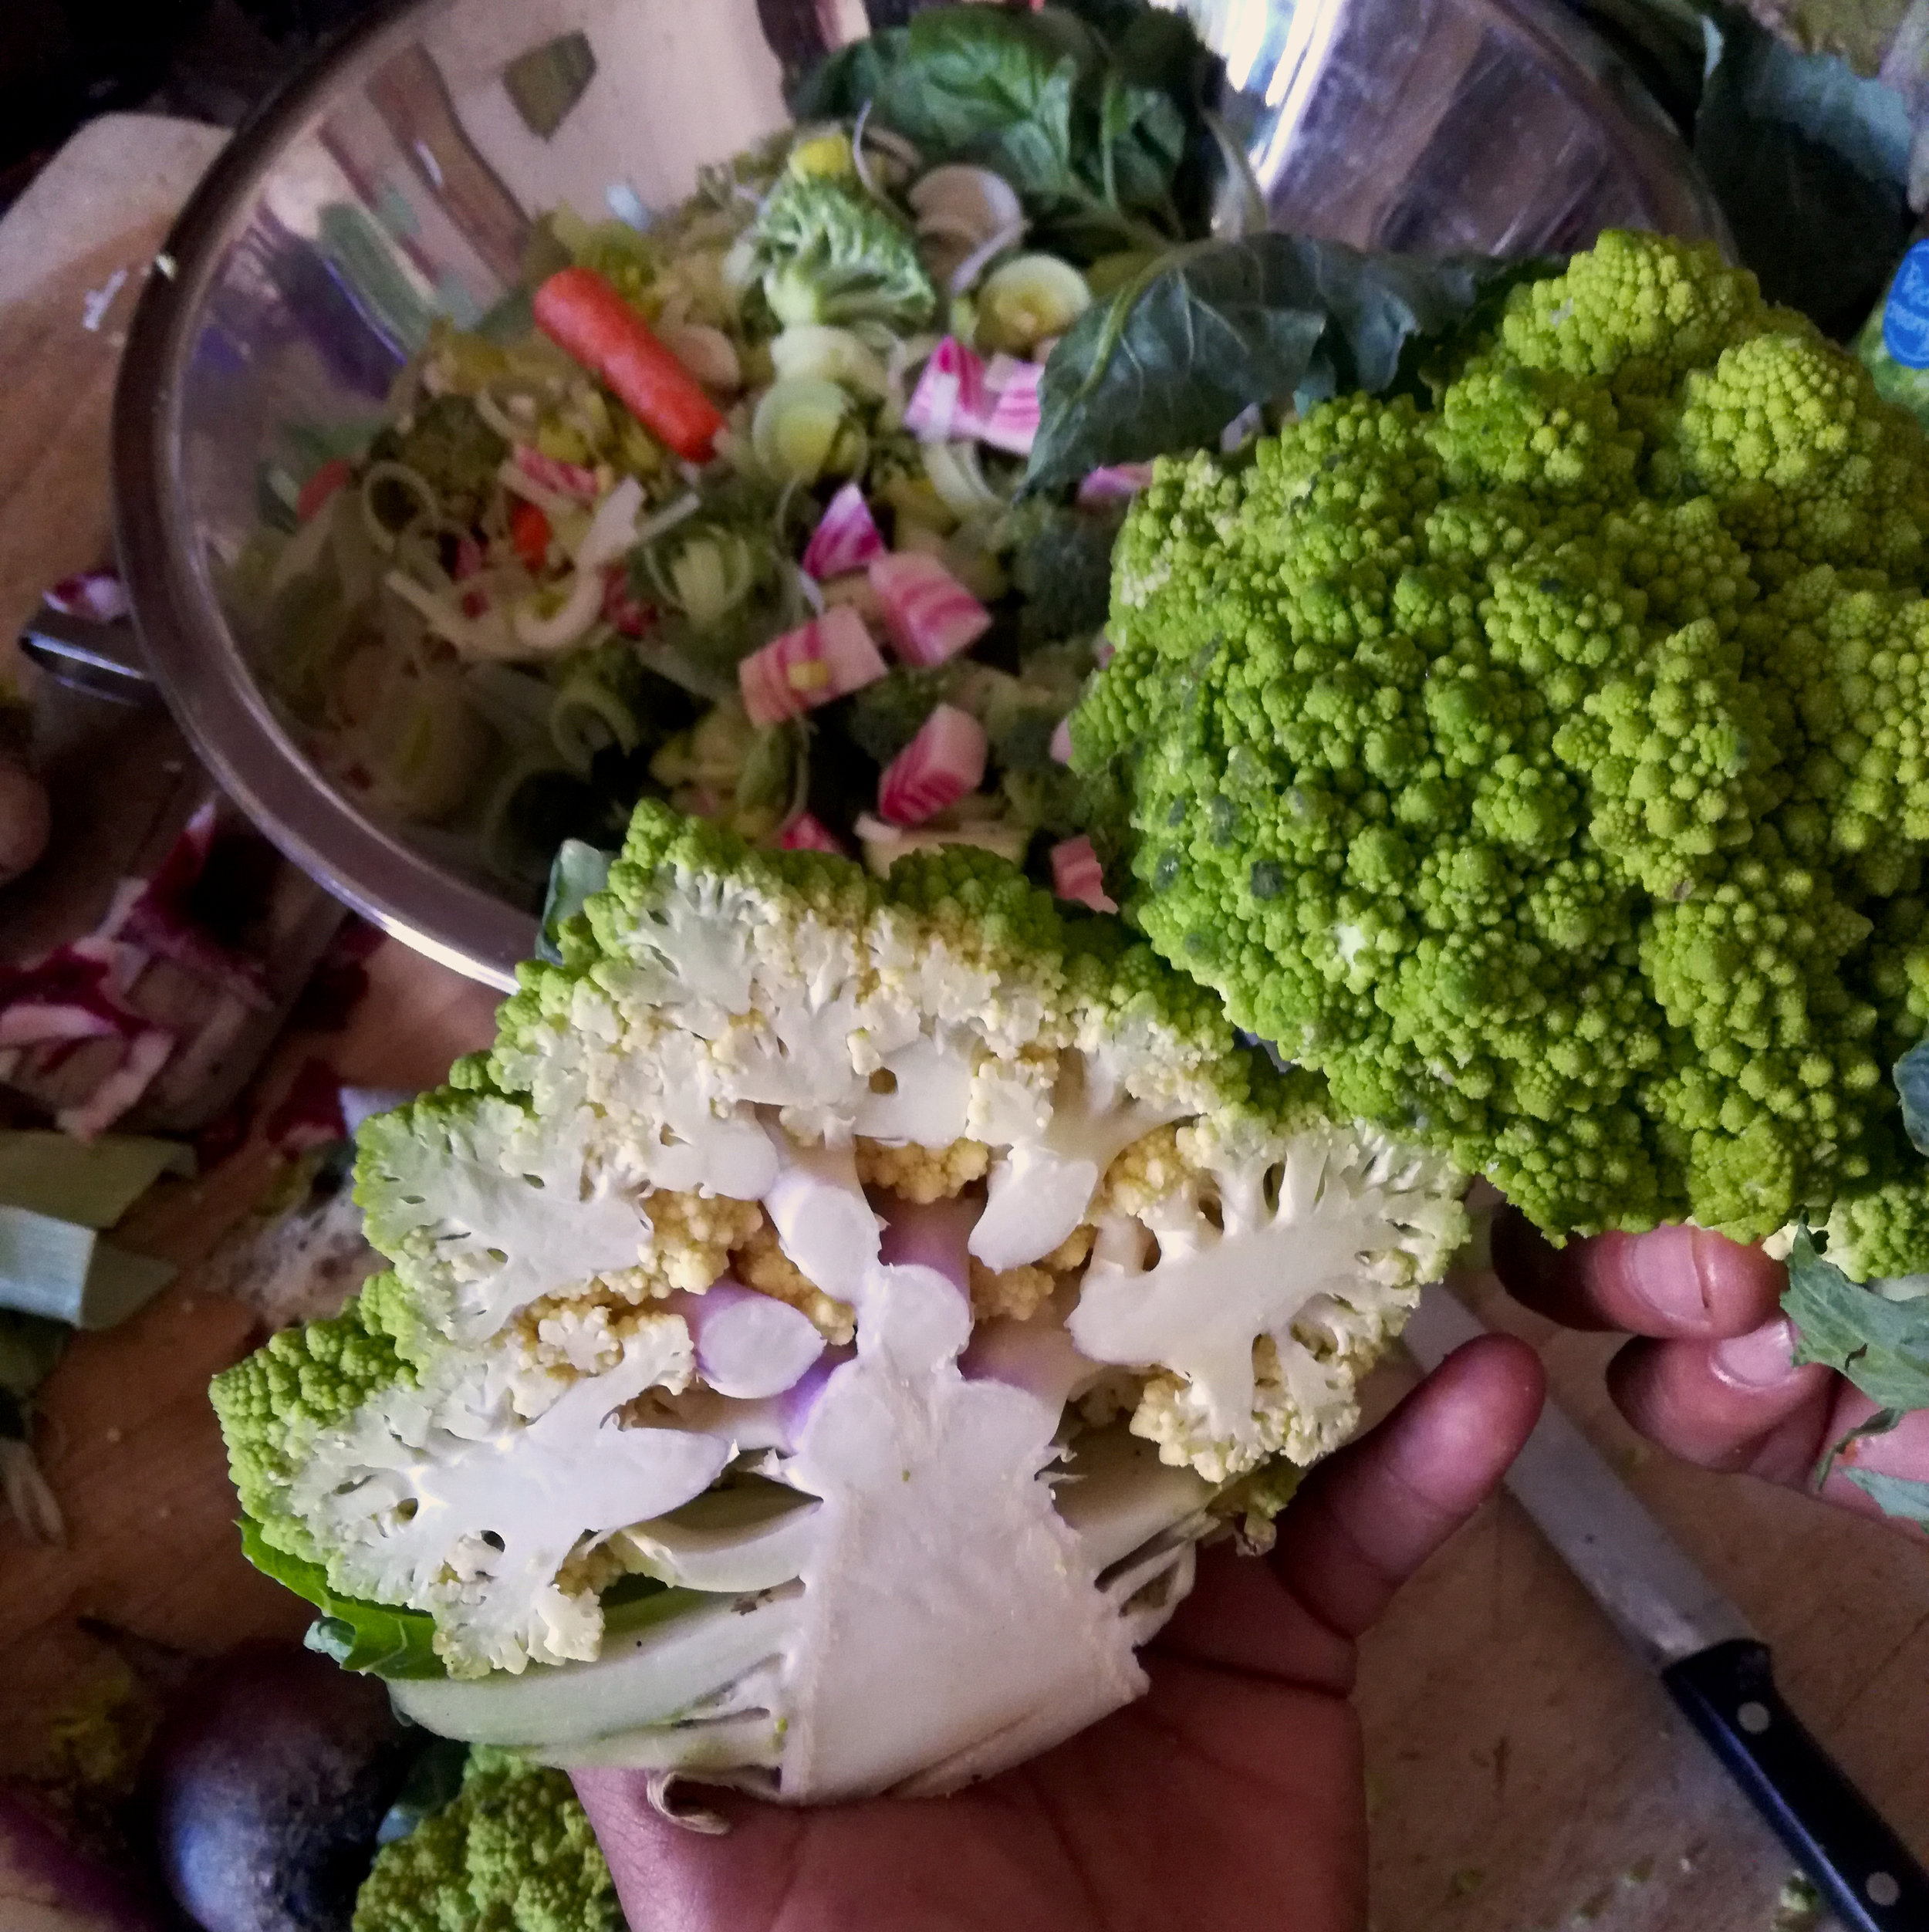 Fresh produce is beautiful, healthy, tasty and in the case full of romanescu broccoli math! #FibonacciArt #OrganicProduce #TasteTheRainbow #NaturalCooking #NaturalLiving #CookingVegan